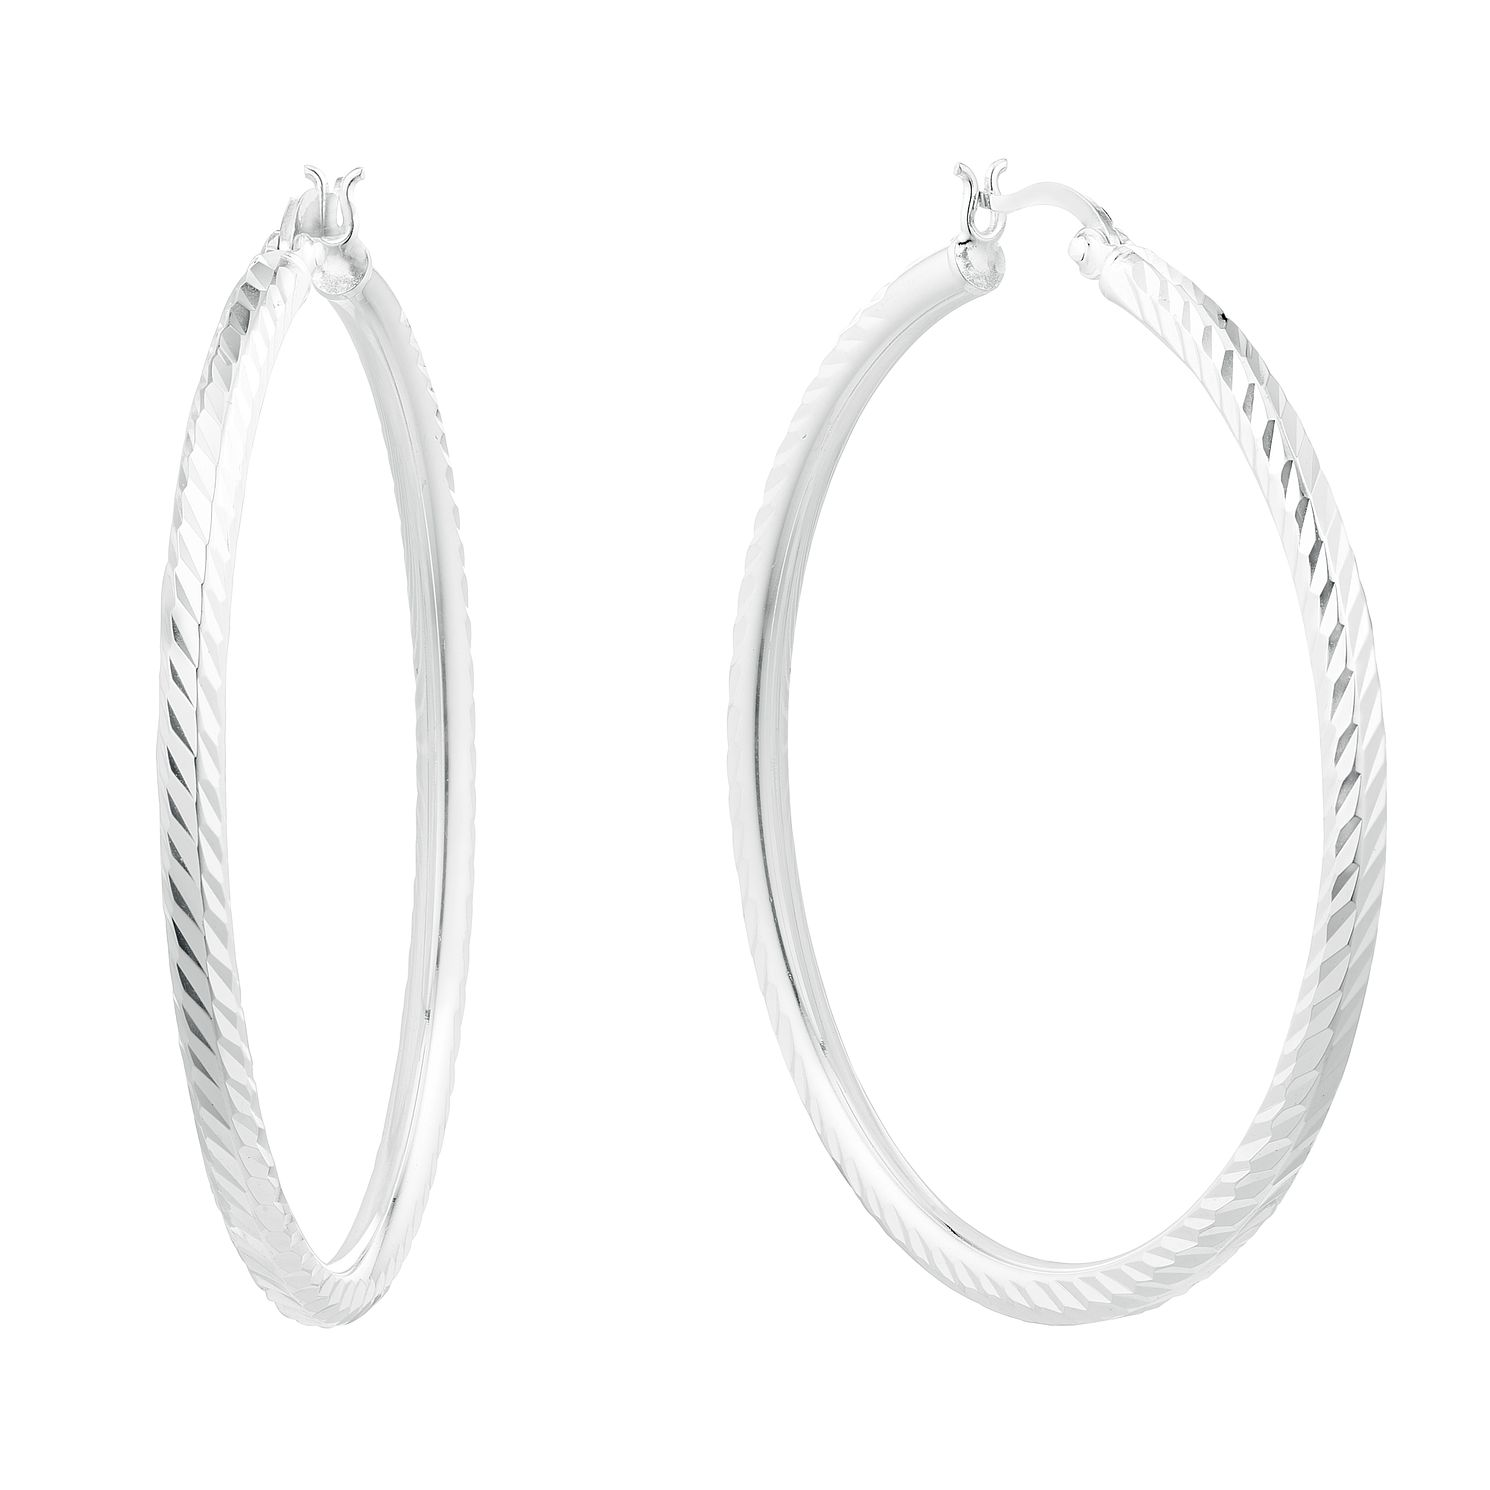 Silver Diamond Cut 45mm Creole Hoop Earrings - Product number 3045498